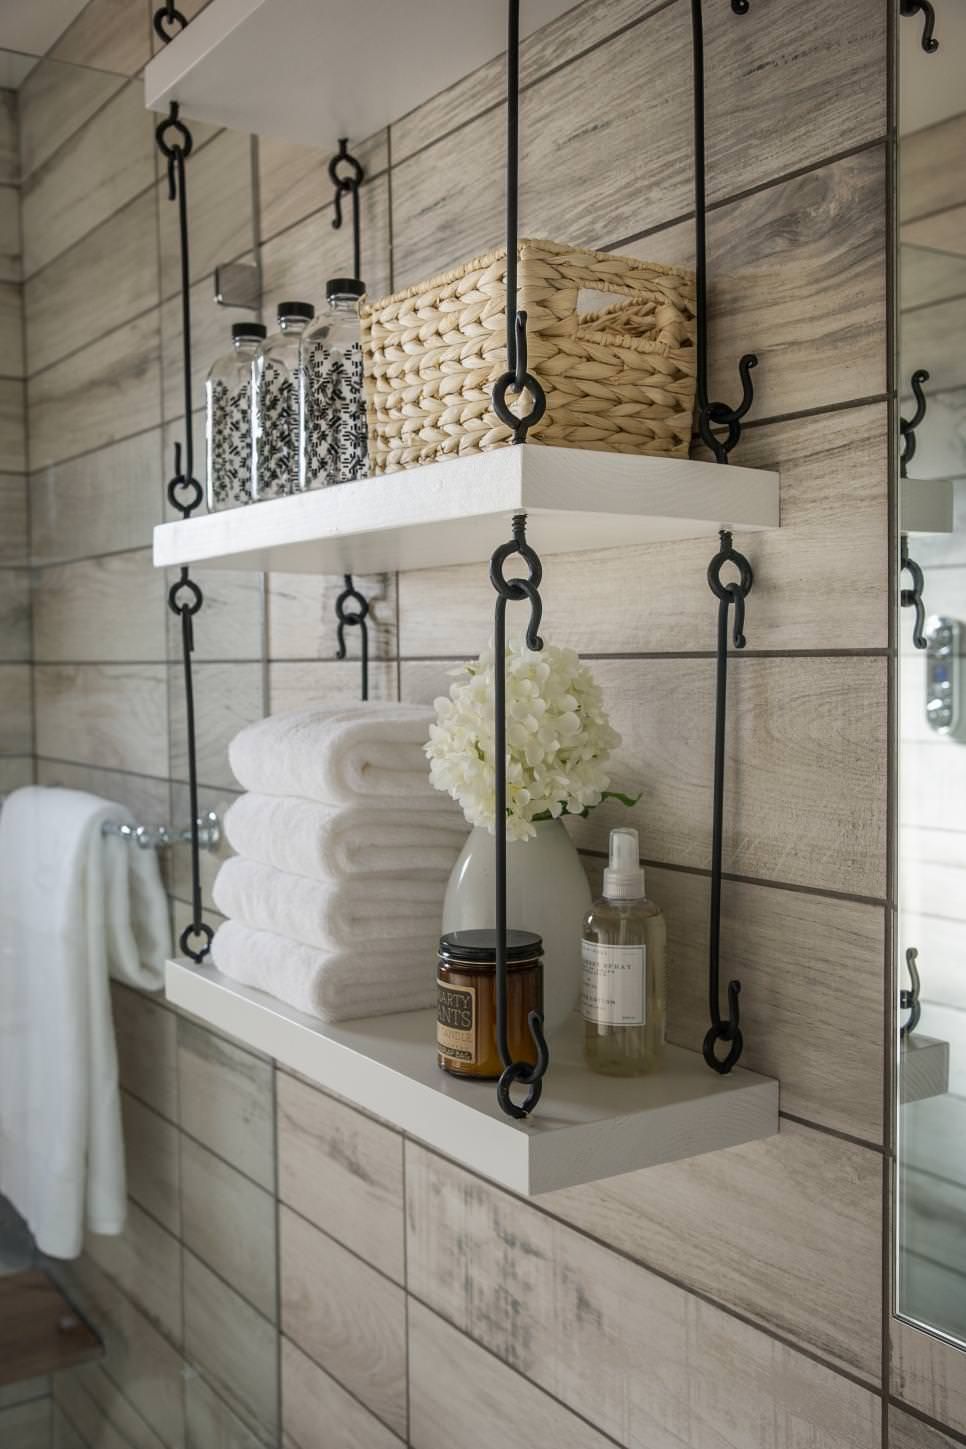 Clever Bathroom Hanging Wall Shelves